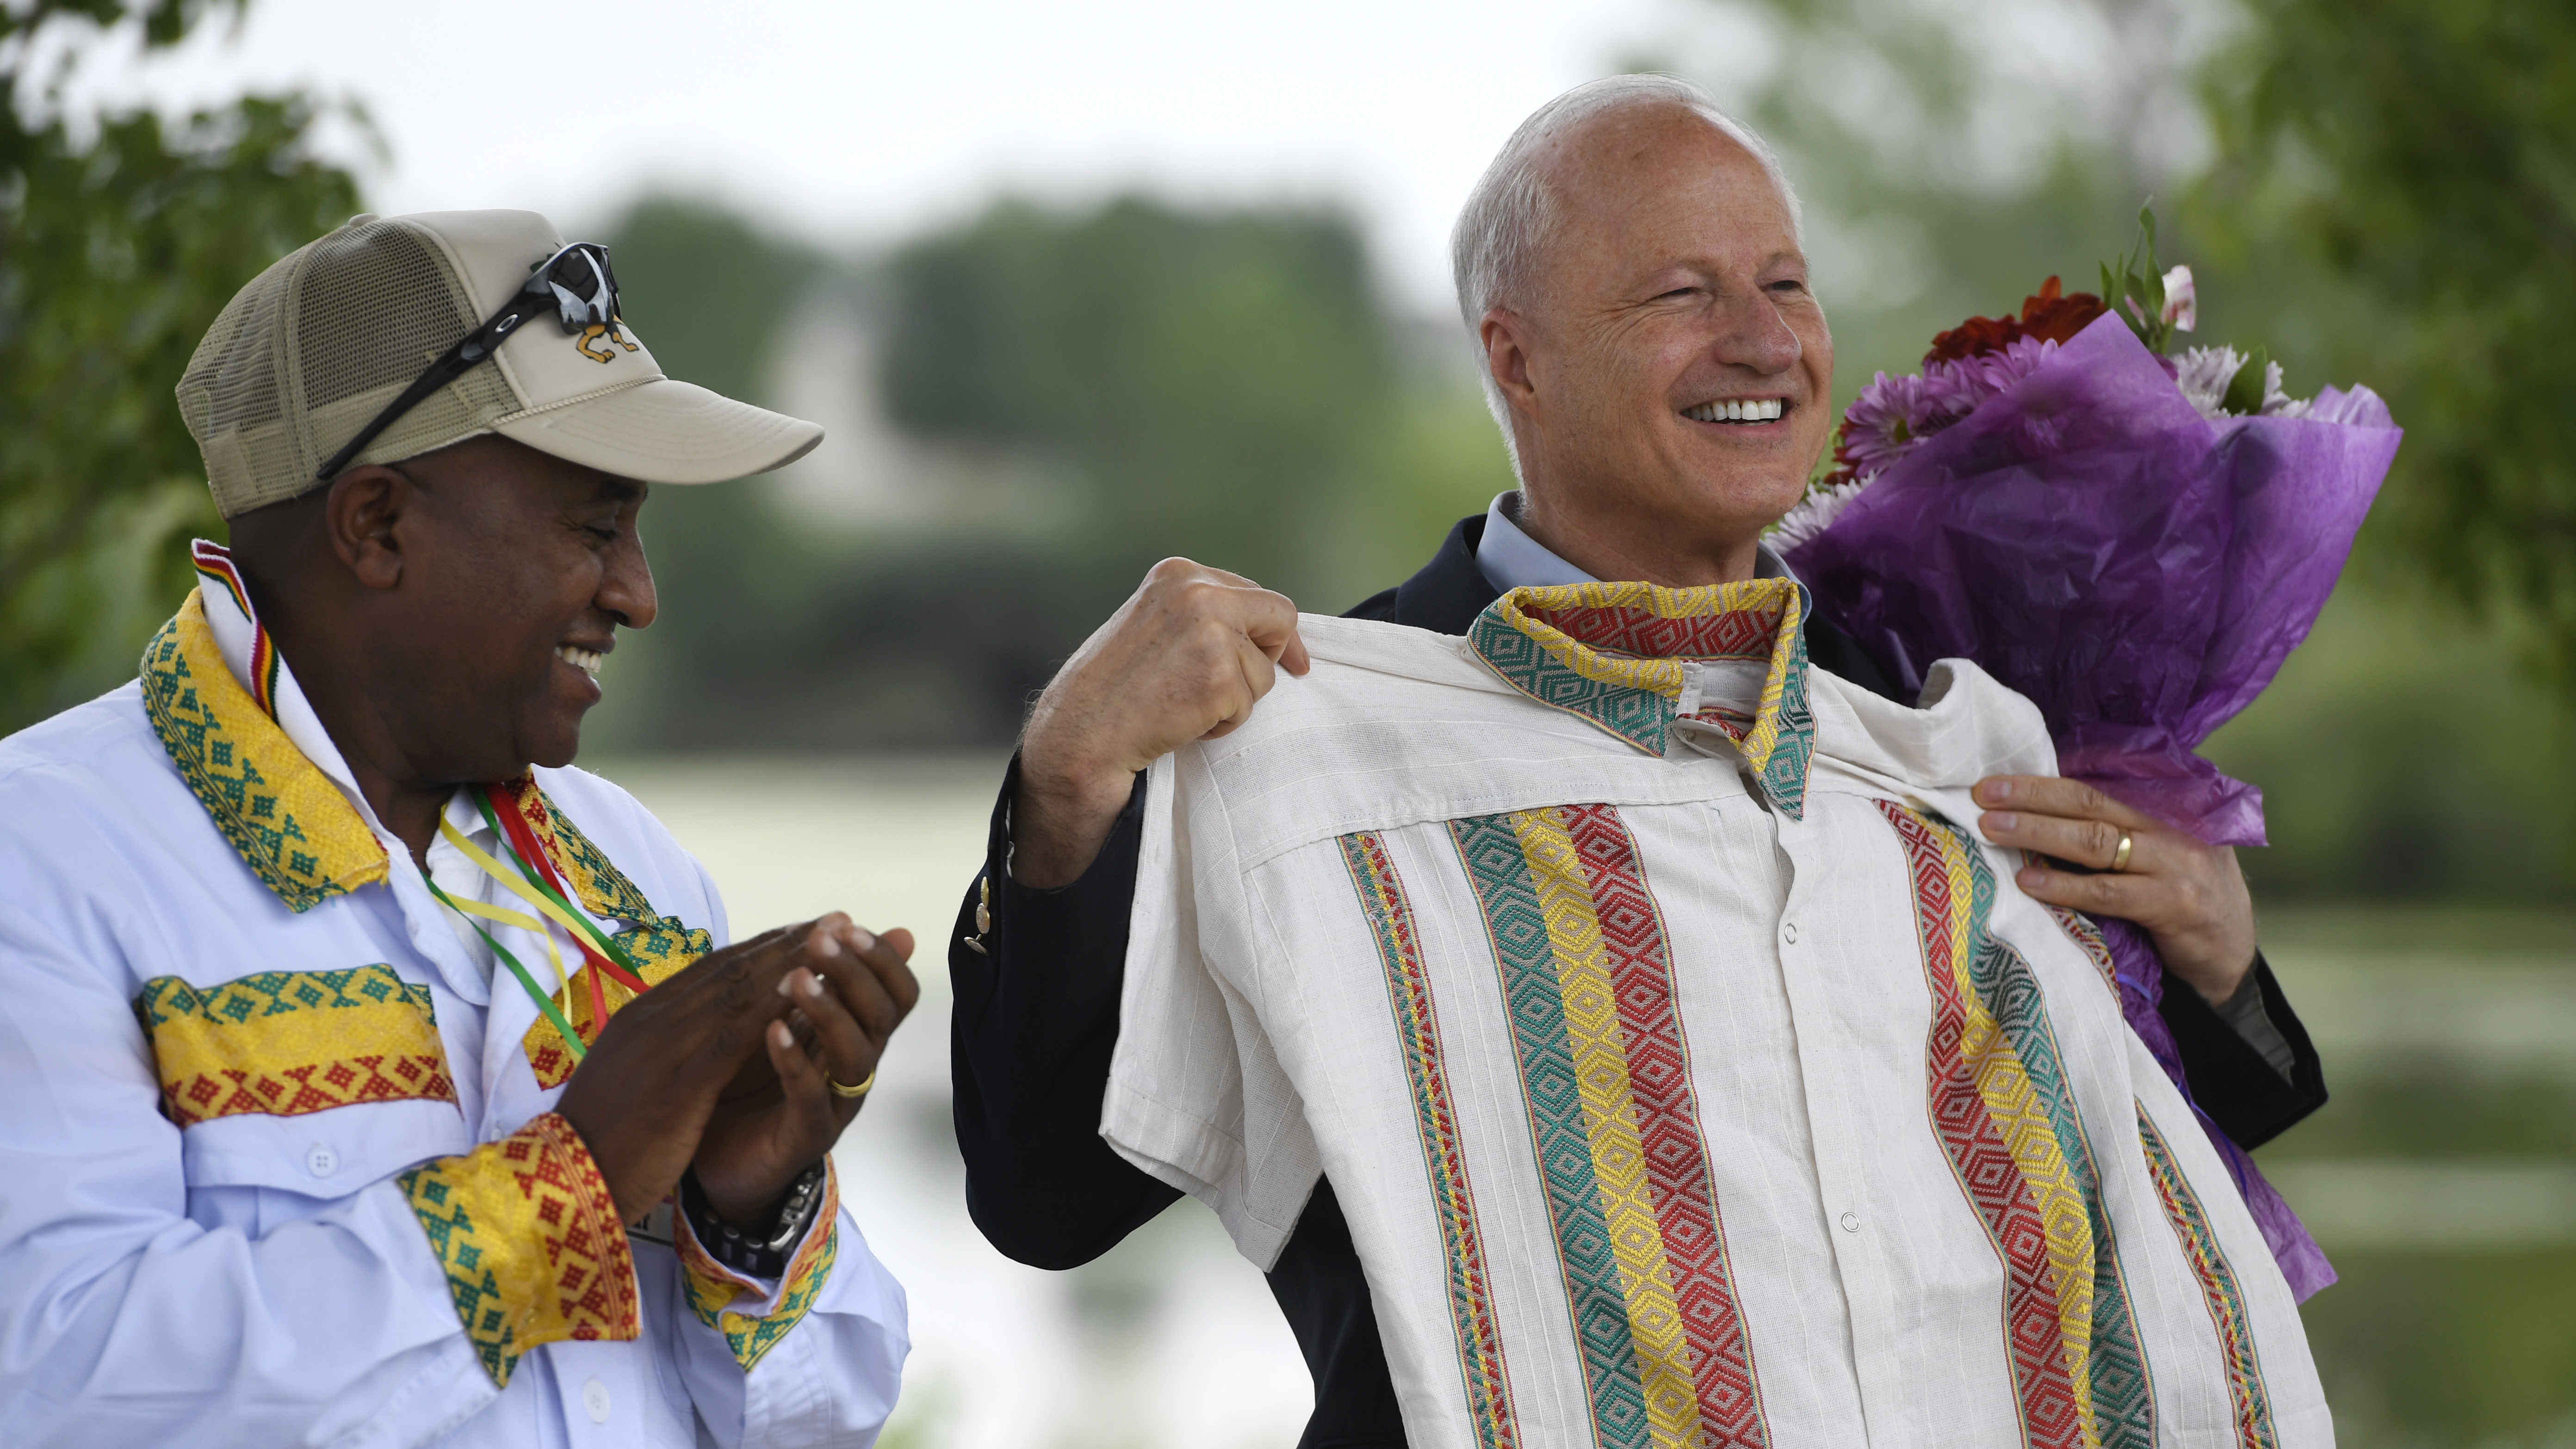 Then-U.S. Rep. Mike Coffman accepts a gift of a traditional Ethiopian shirt from Girum Alemayehu at an Ethiopian festival in Denver in August 2016. Coffman is waiting to hear election results from 2019 to hear if he will be Aurora's next mayor.